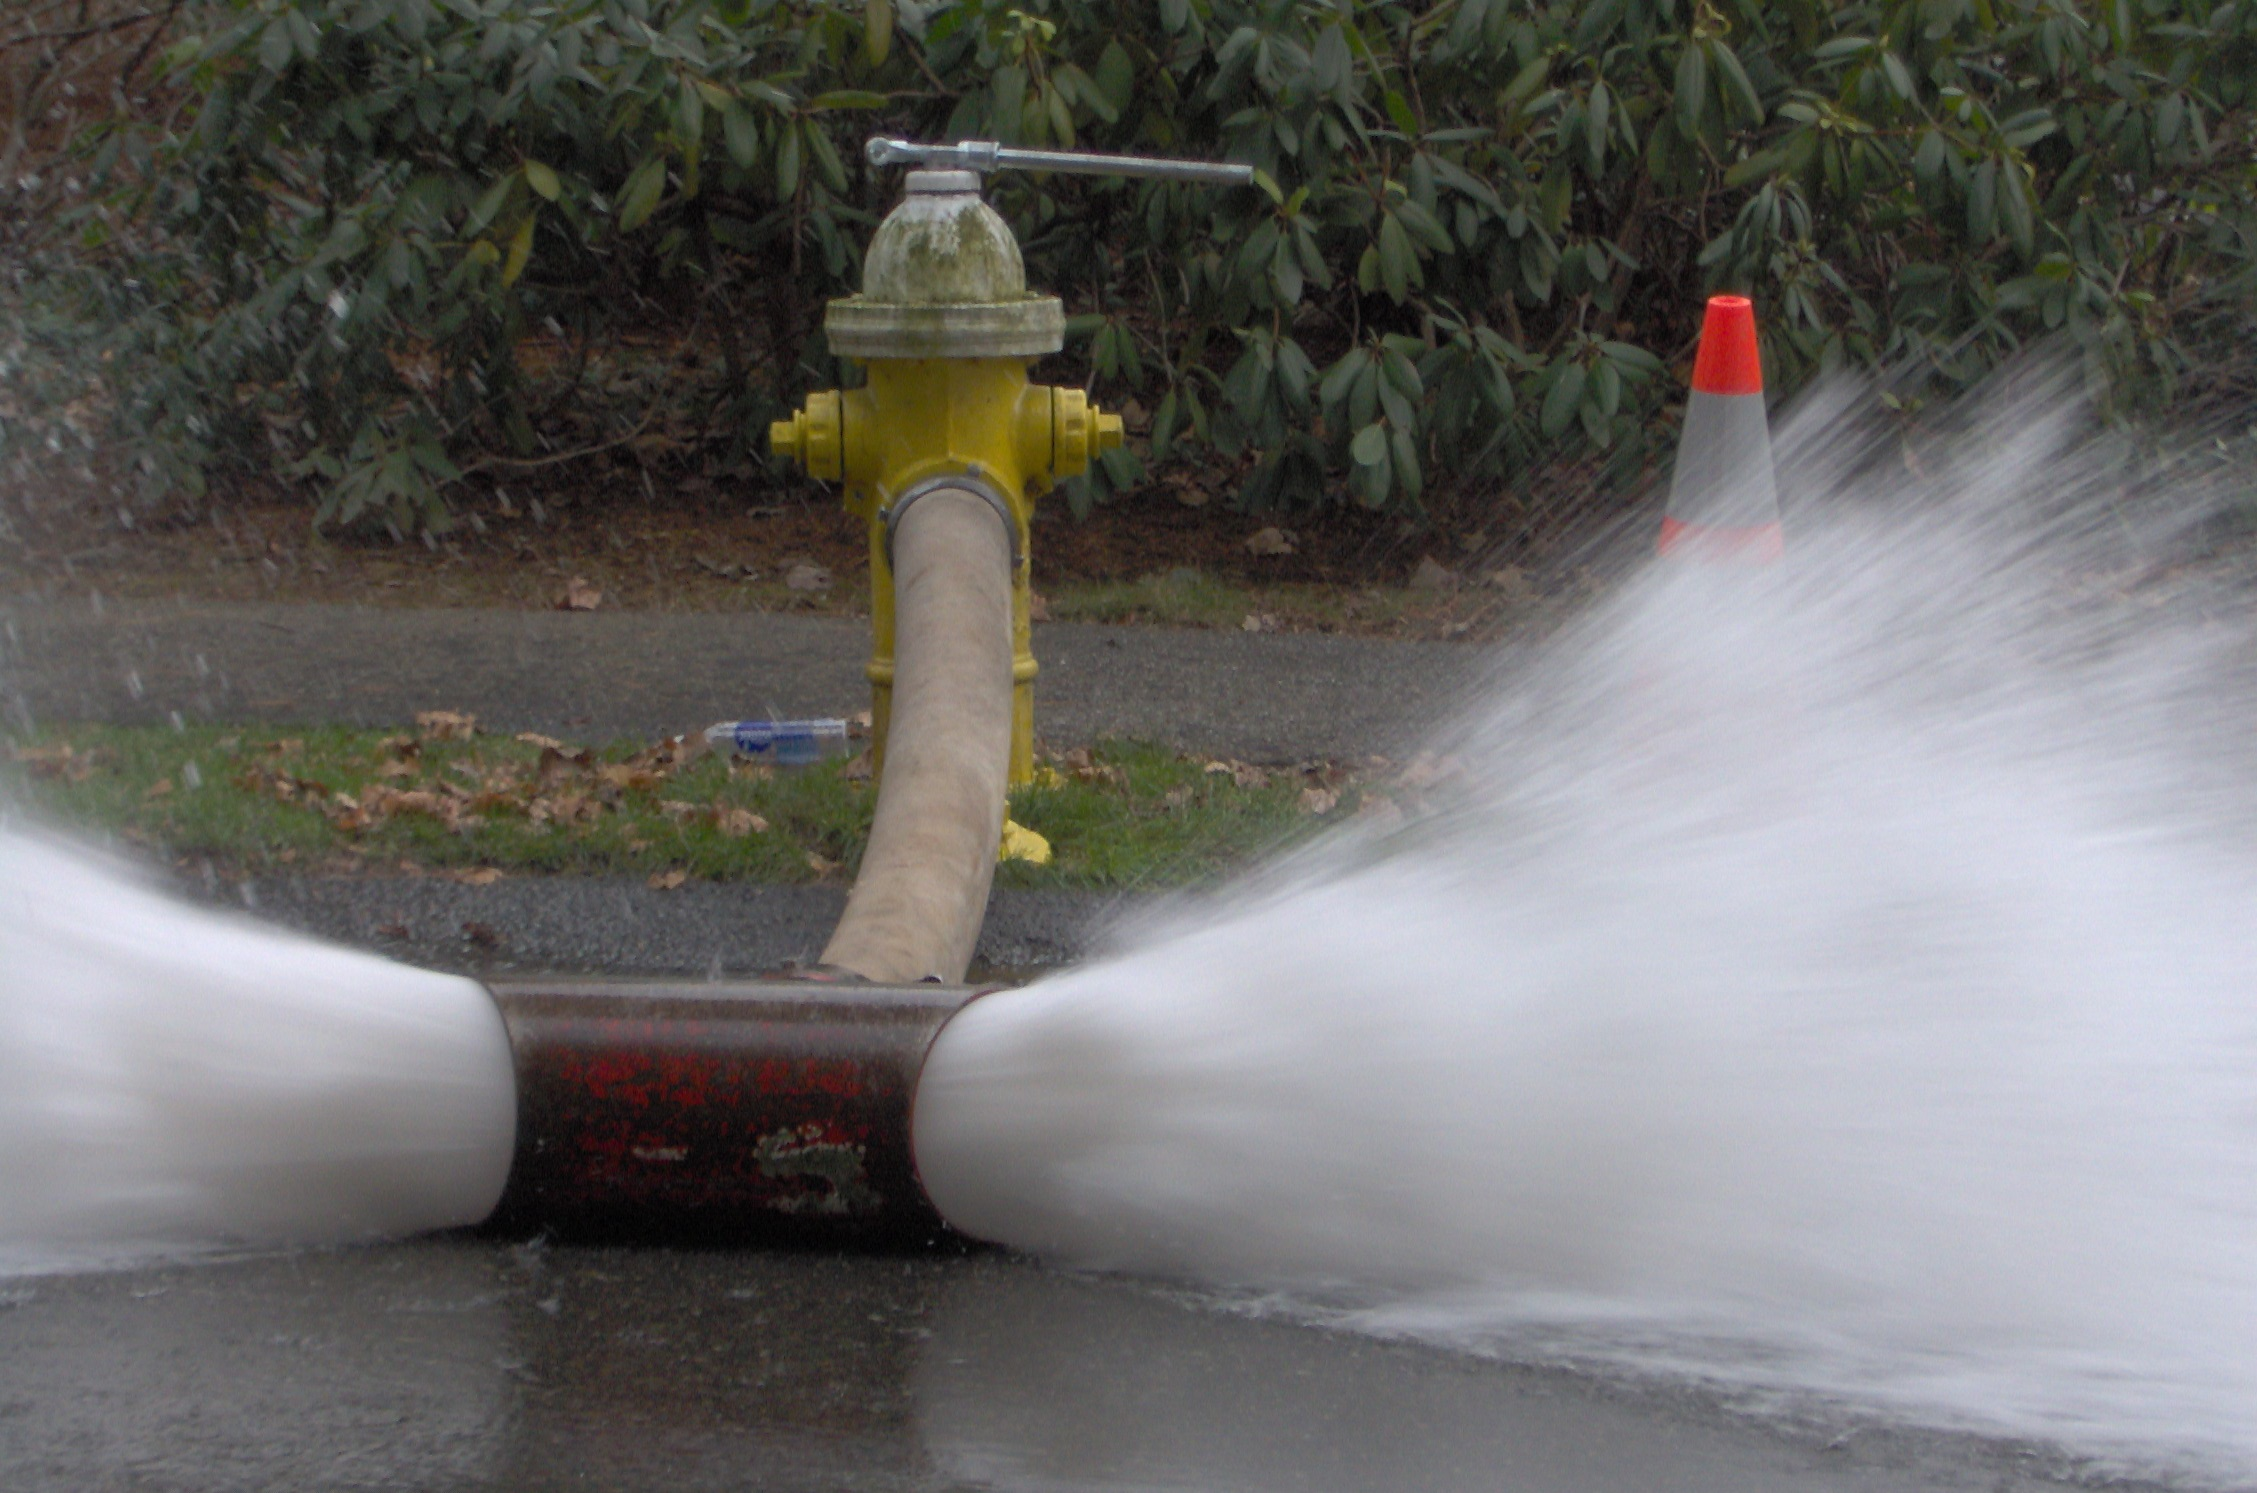 Fire hydrants with water coming out of it